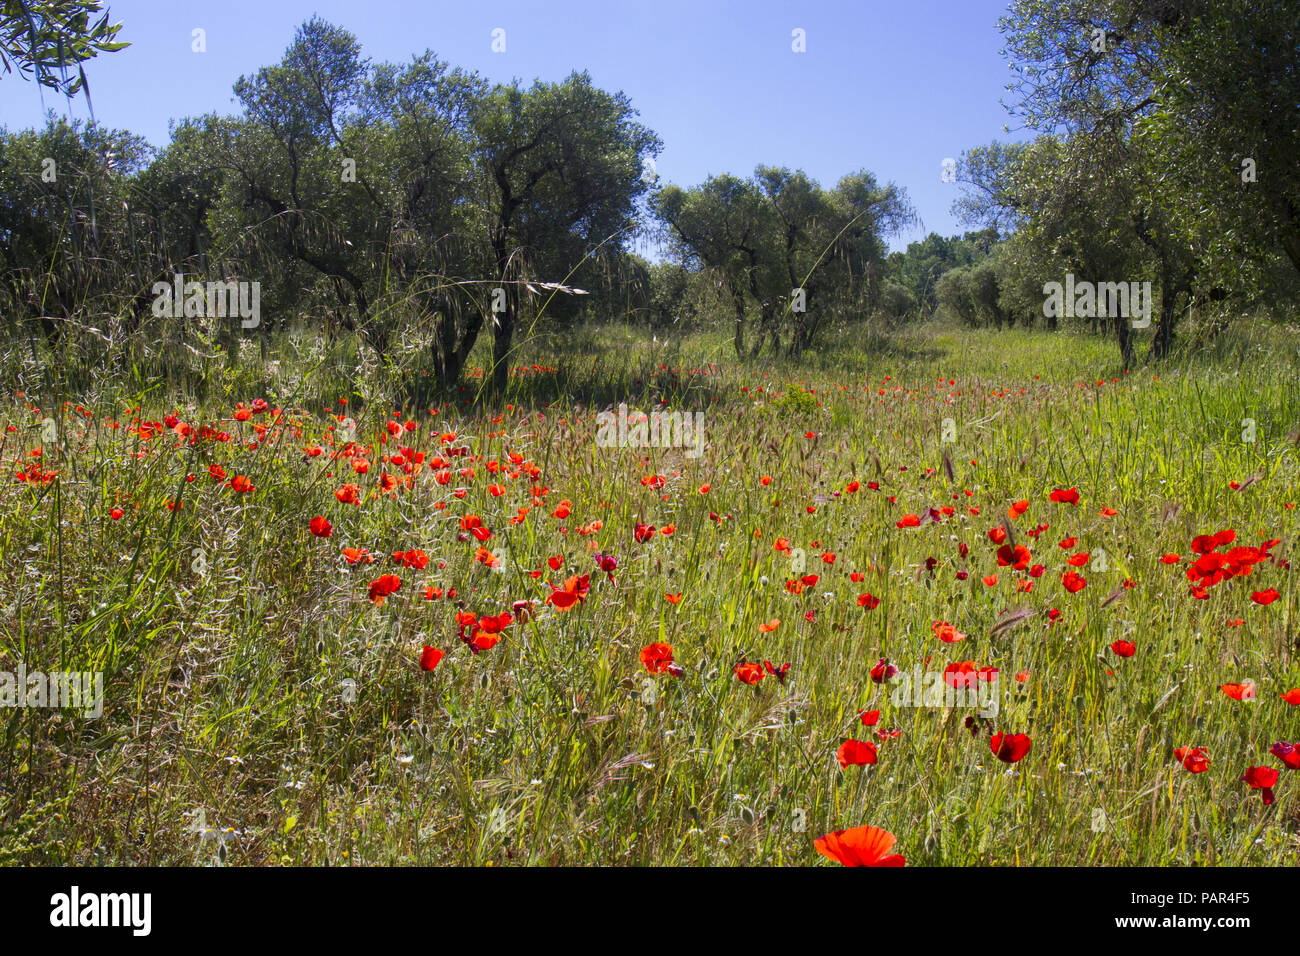 Corn Poppies (Papaver rhoeas) flowering in an olive orchard. Near Mouries, Bouches-du-Rh'ne, France. April. - Stock Image